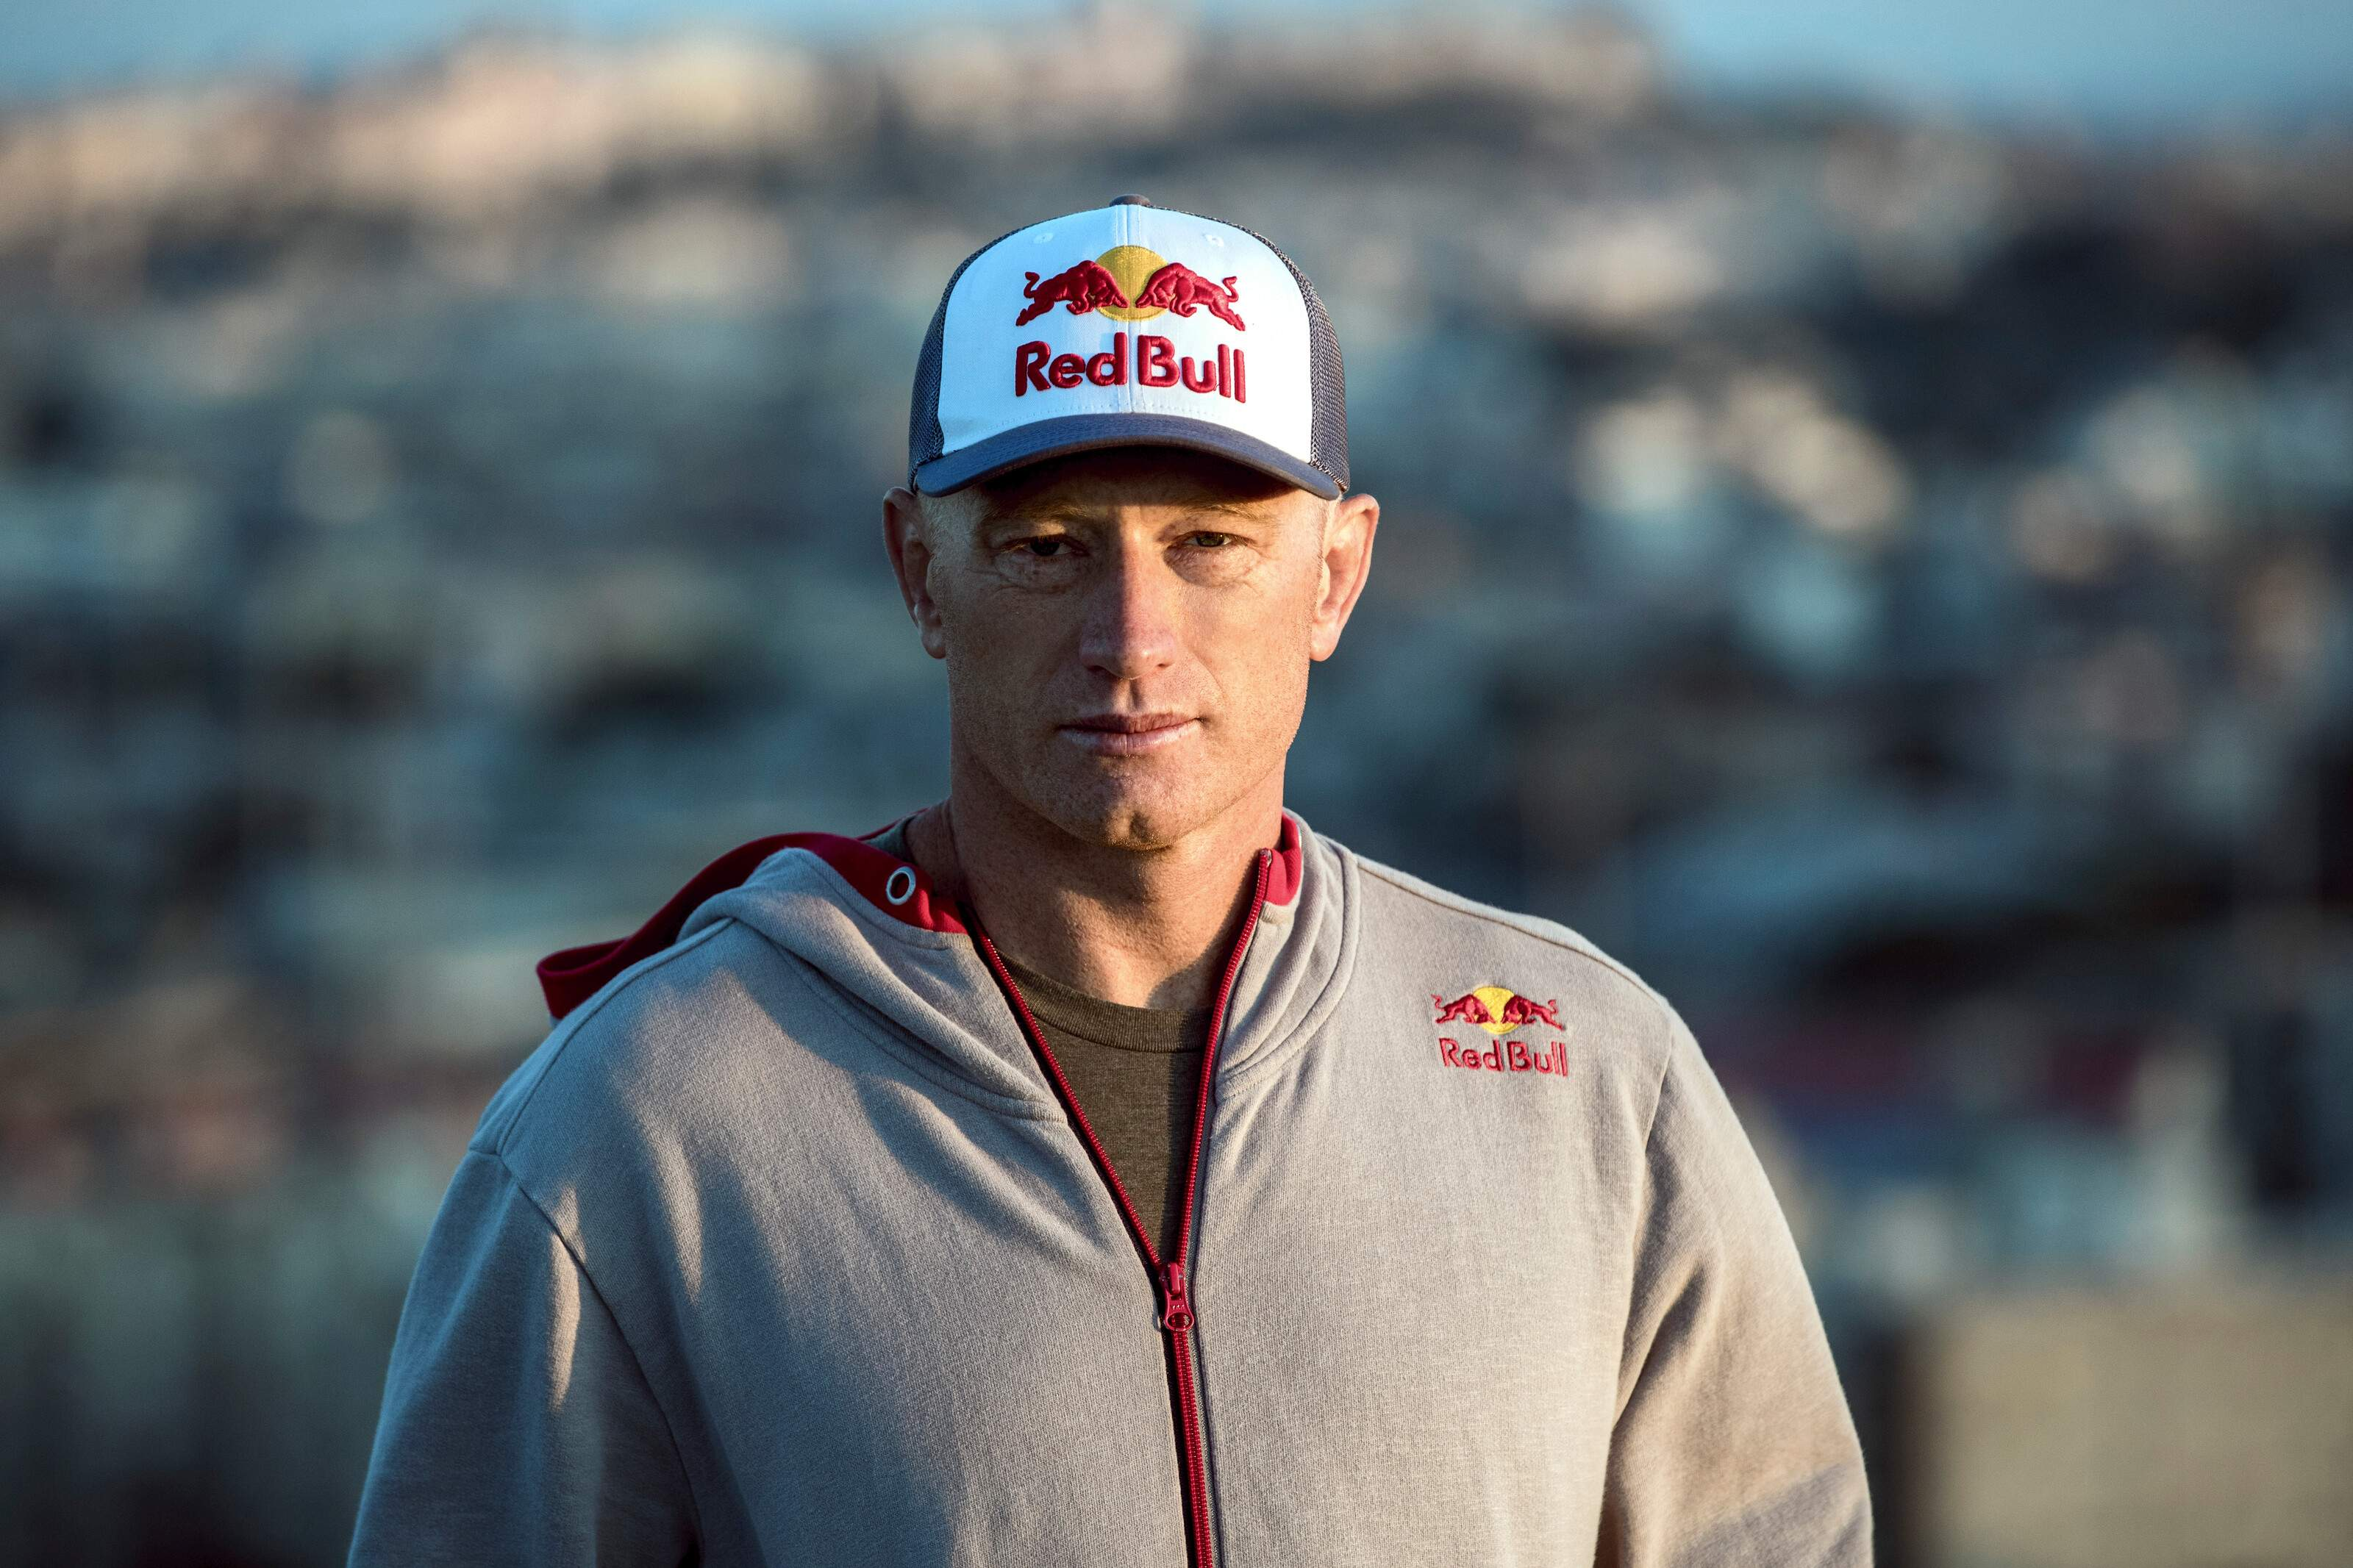 Jimmy Spithill (AUS) of team Luna Rossa Challenge poses for a portrait in Cagliari, Italy on August 14, 2019. Photographer Credit: Samo Vidic/Red Bull Content Pool